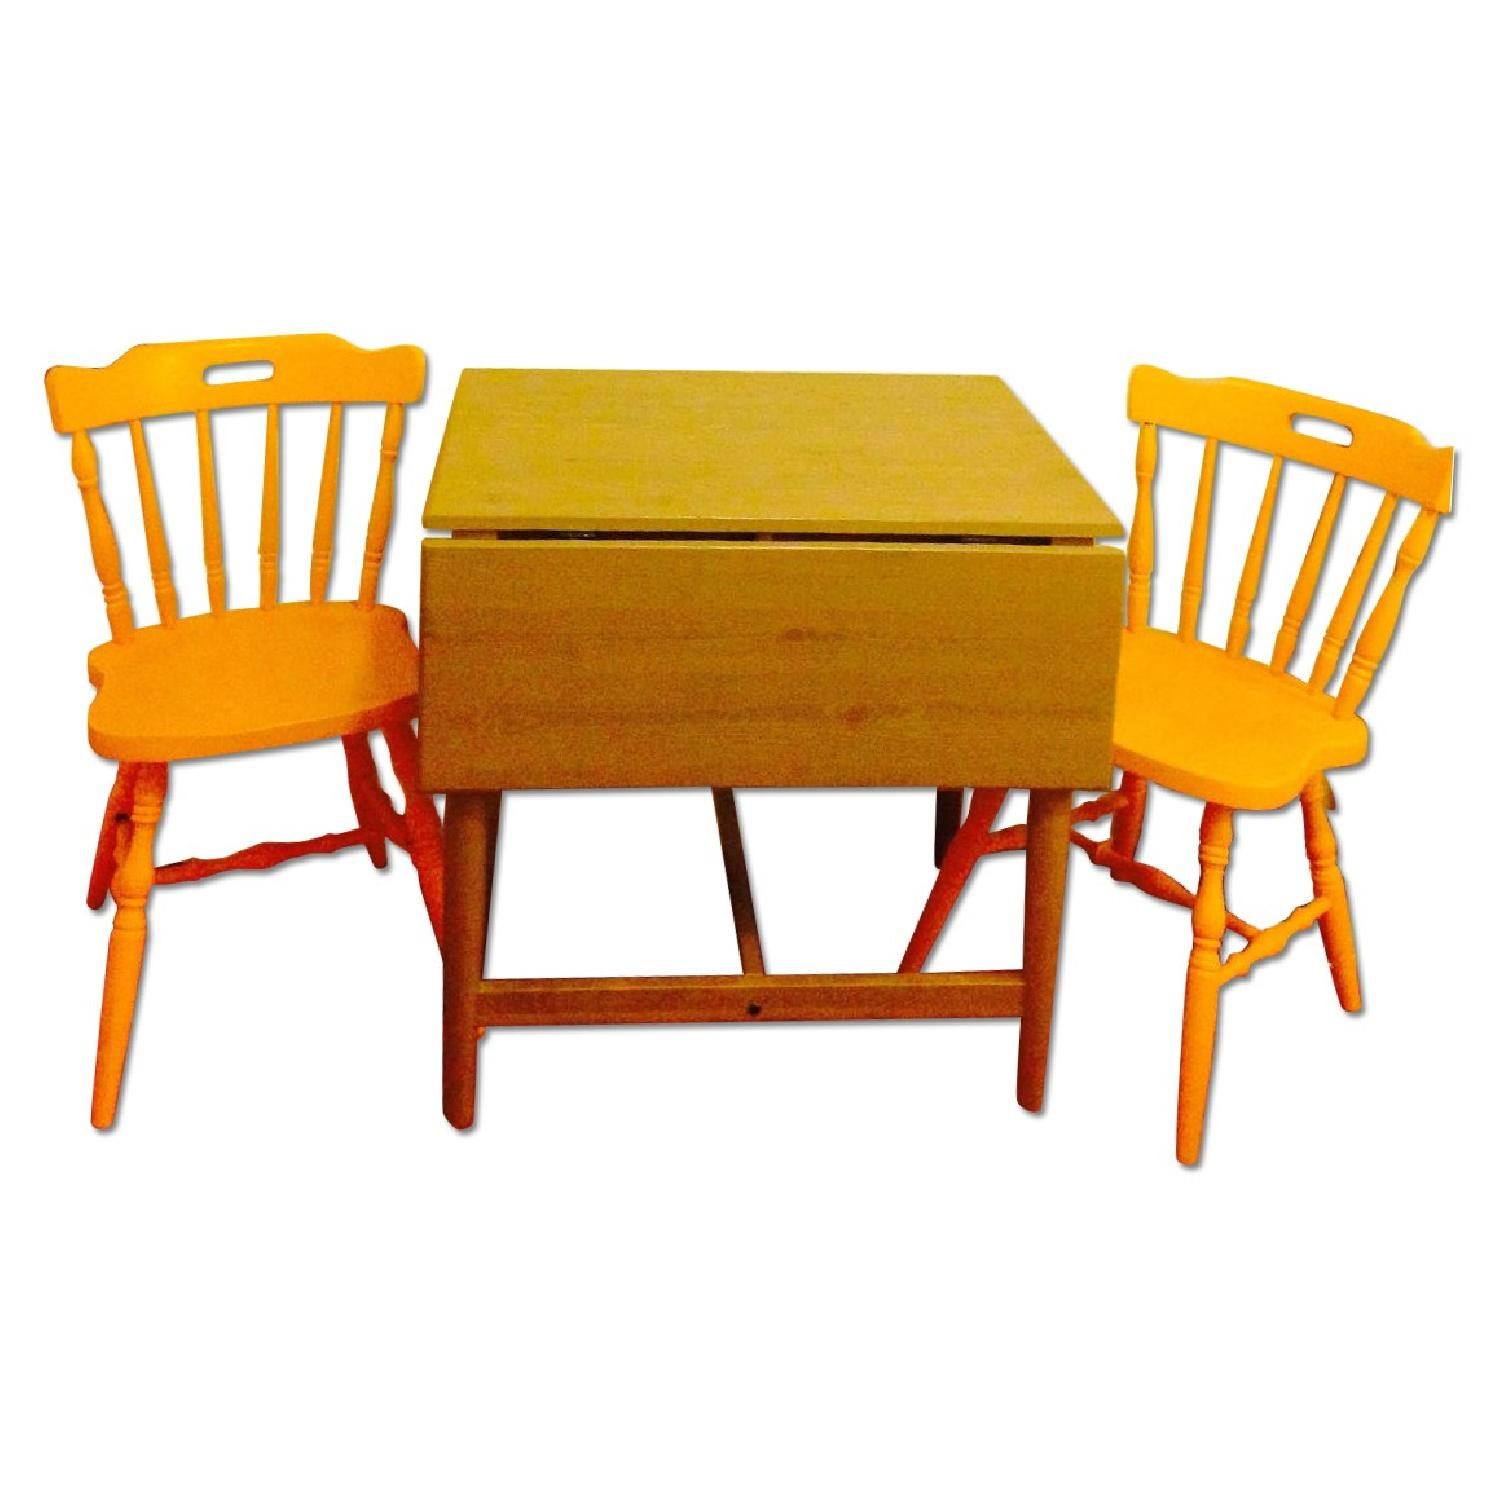 Ikea Drop-Leaf Dining Table w/ Antique 2 Chairs - image-0